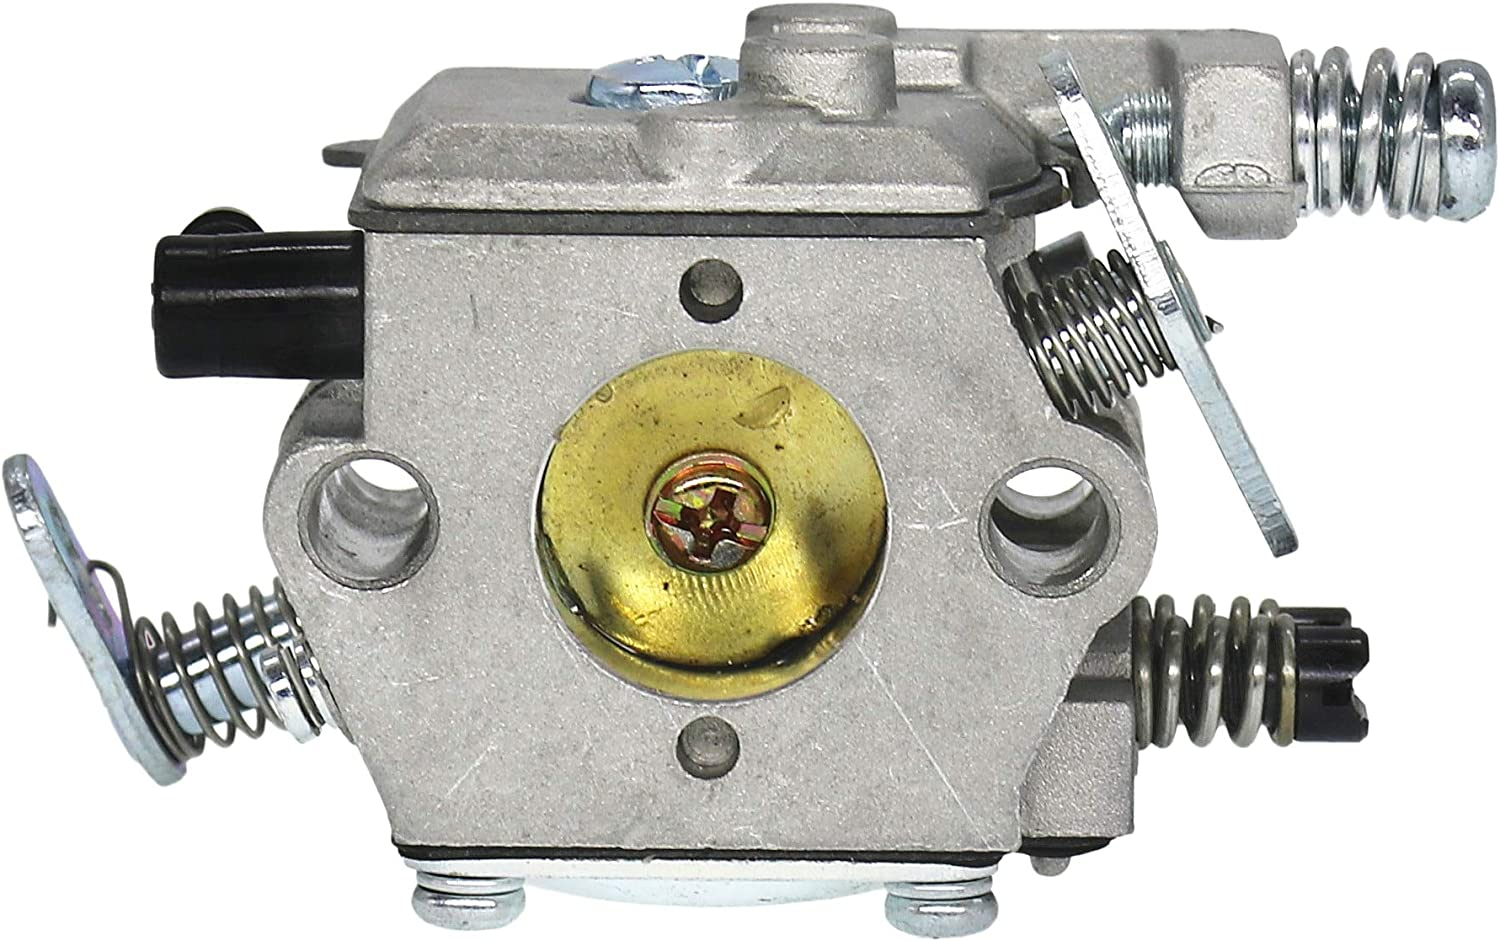 Replacement New arrival Parts for Yuton Carburetor Stihl Carb MS18 MS170 Direct stock discount